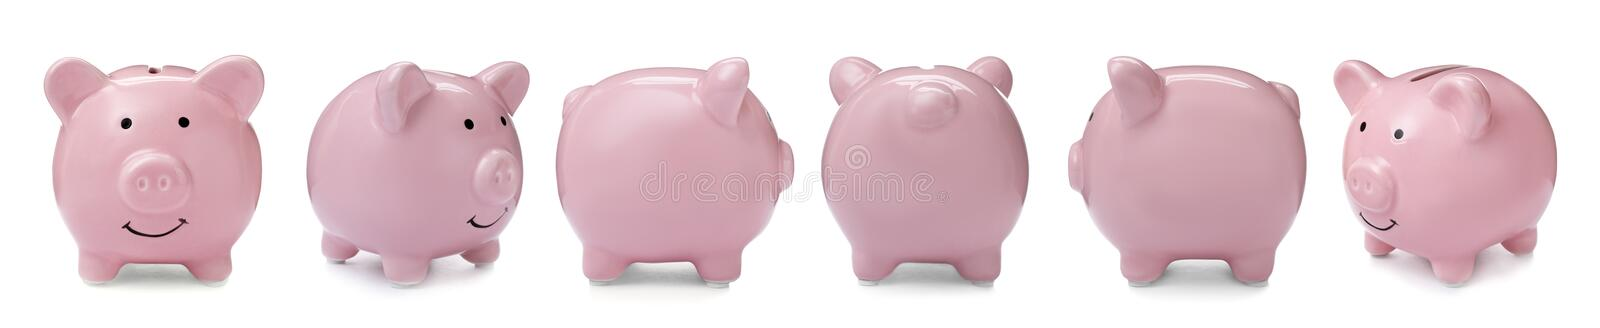 Set with pink piggy bank from different views. On white background royalty free stock photography